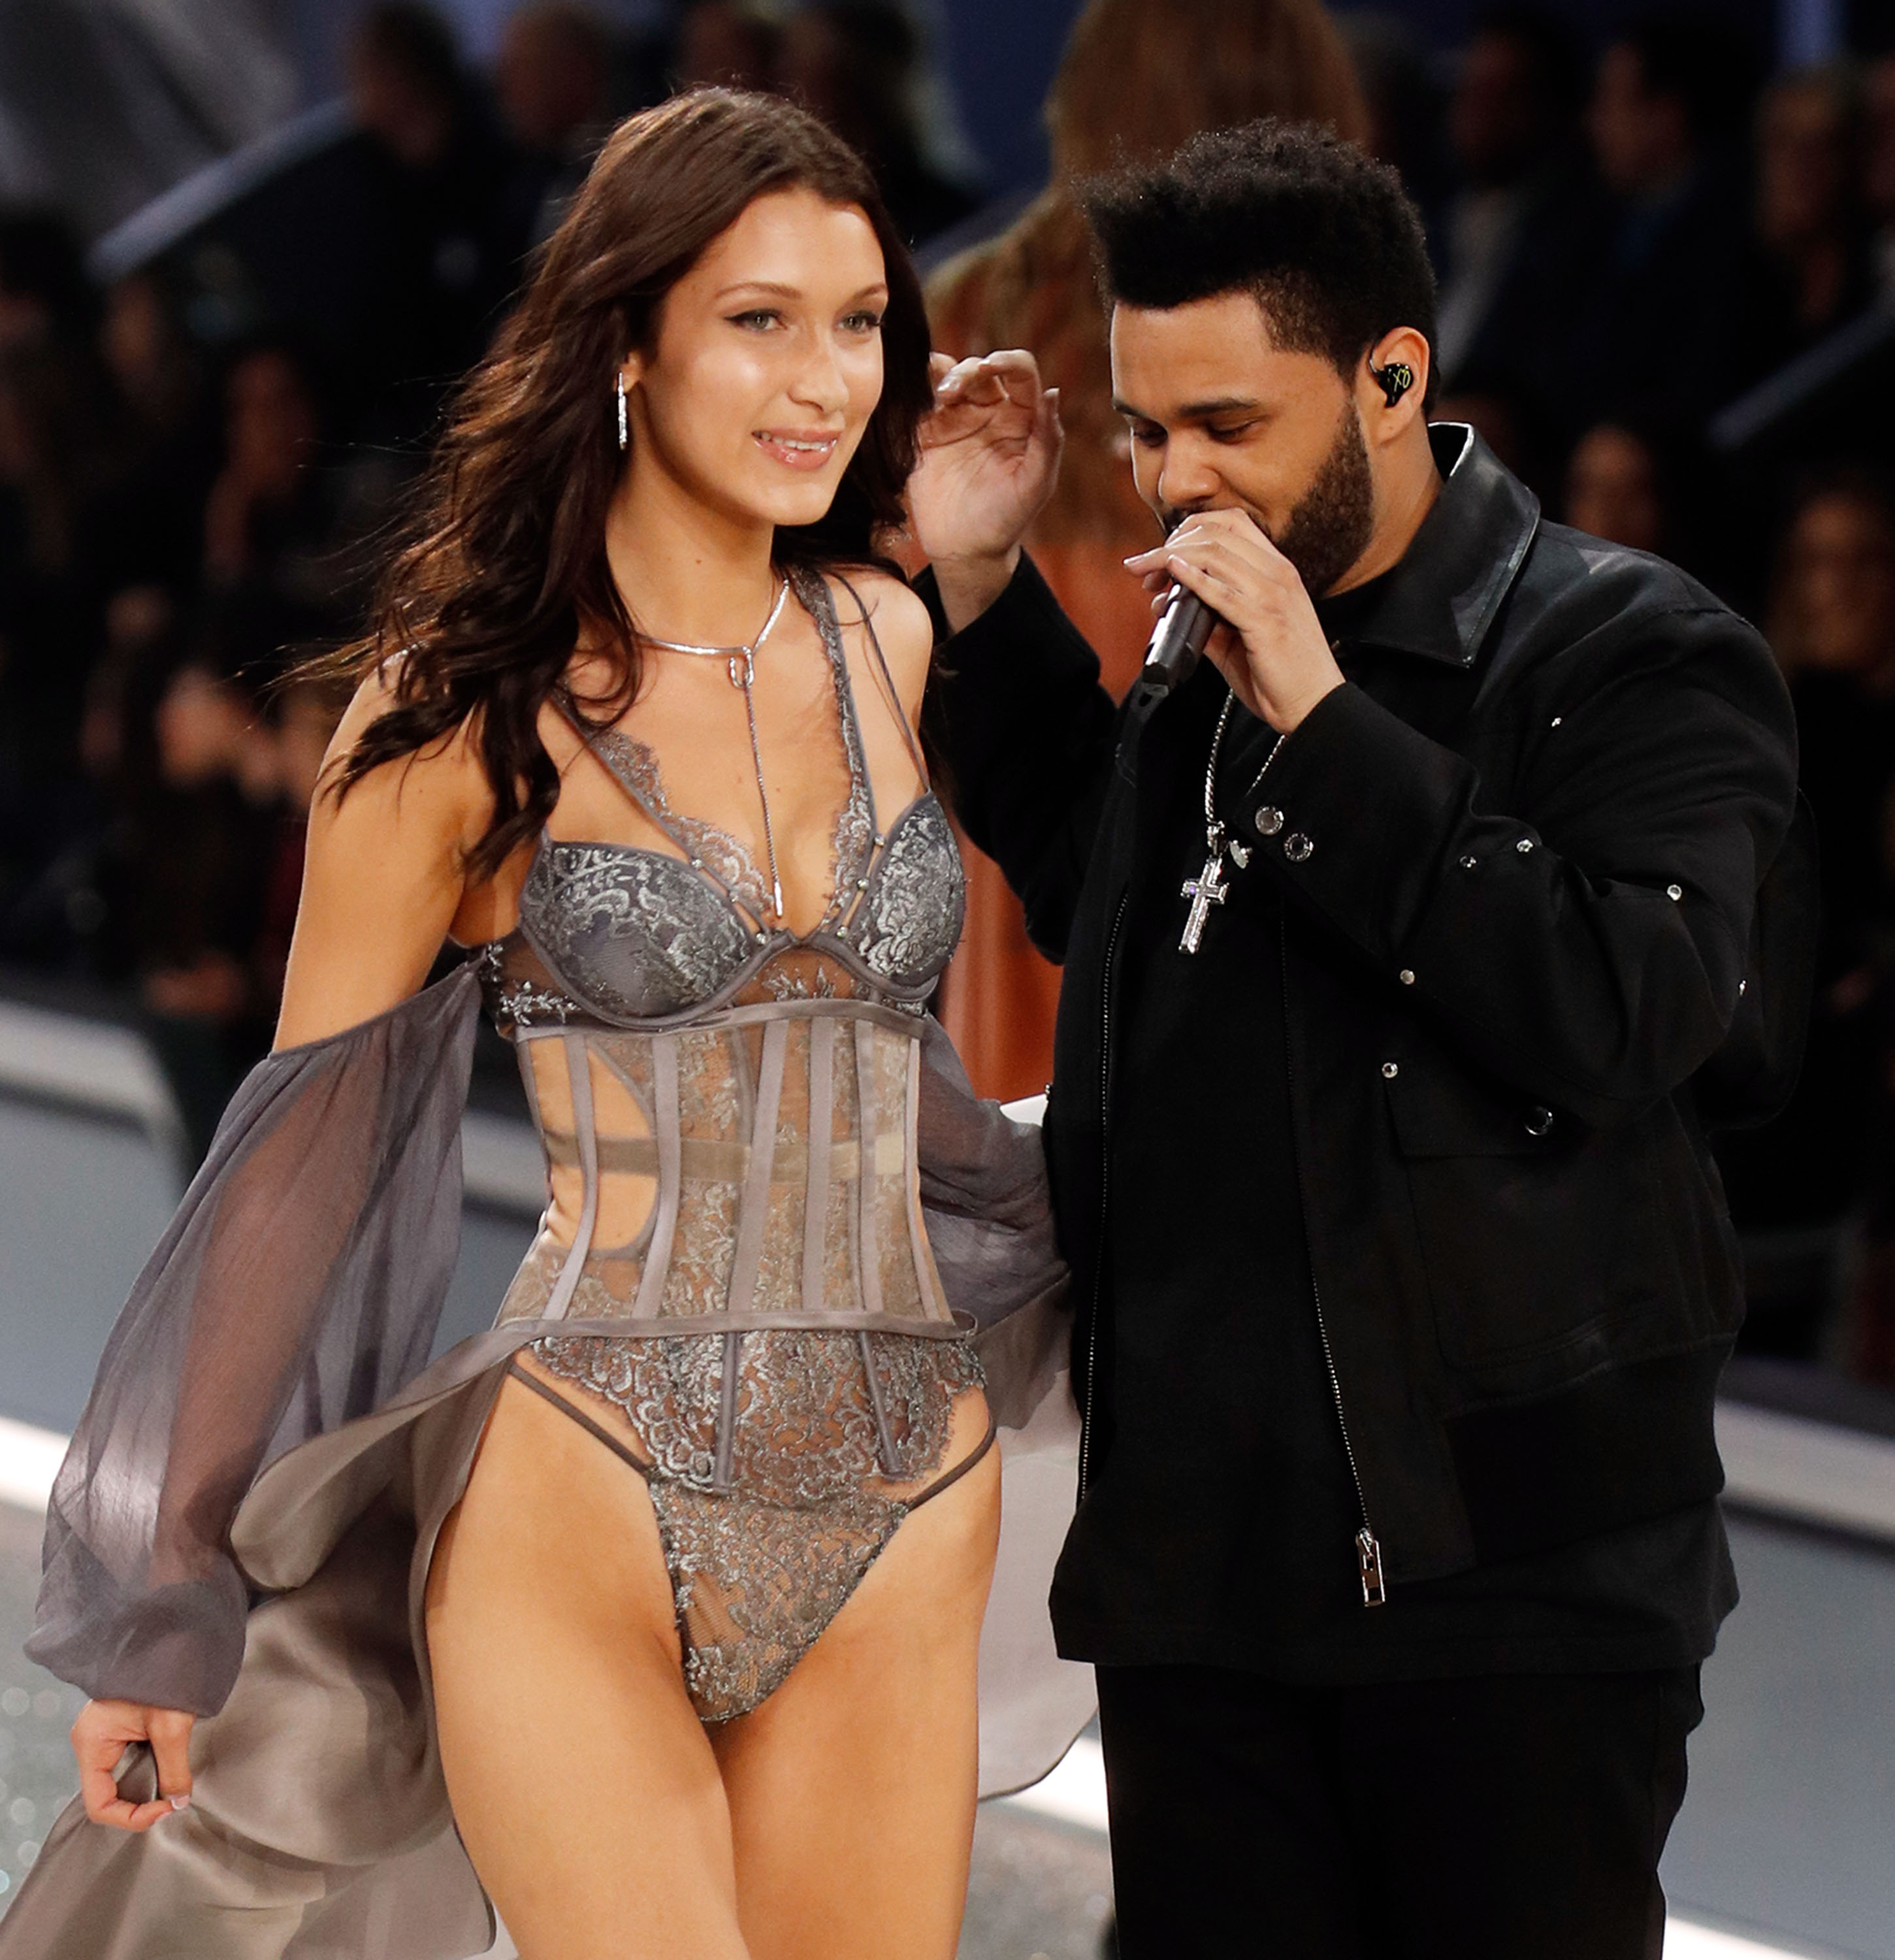 Bella continues down the runway leaving her ex-boyfriend looking after her. (Photo credit: Splash News)